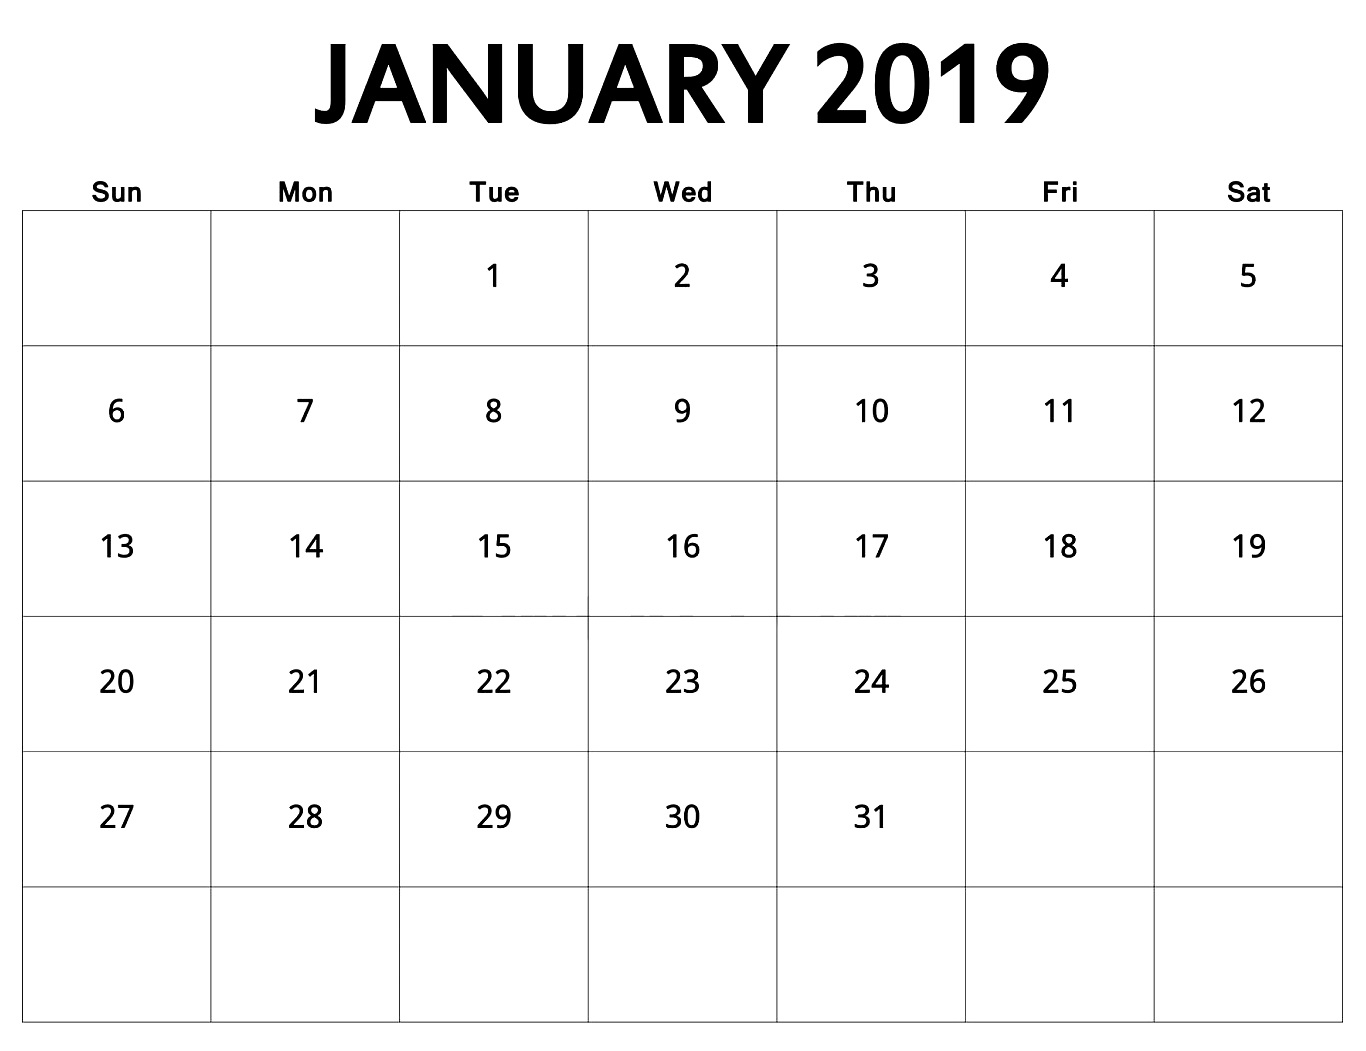 january 2018 printable calendar templates incredible january::January 2019 Calendar with Holidays Printable